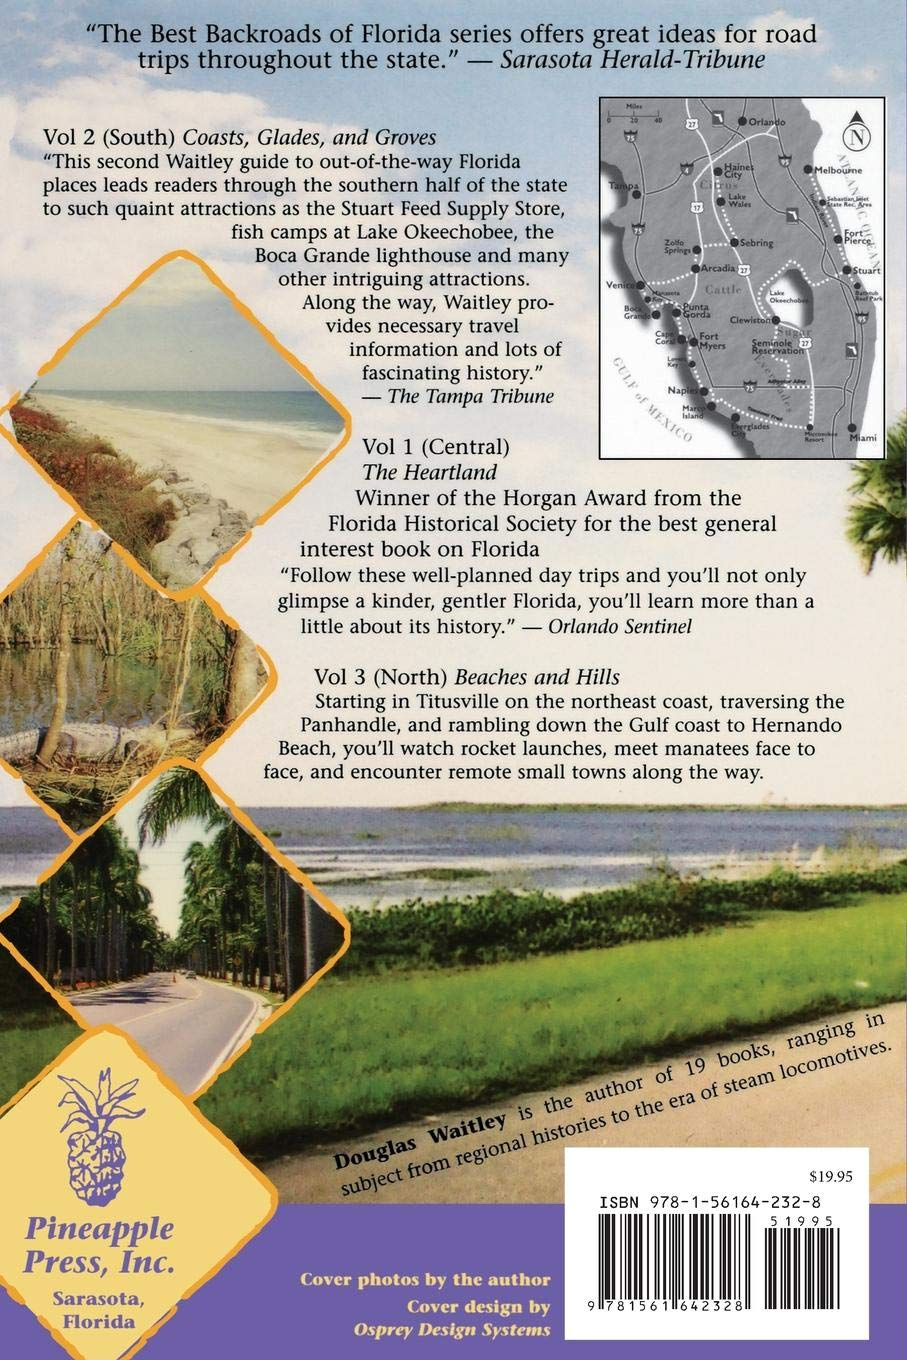 Coasts, Glades, and Groves: 2 (Best Backroads of Florida)